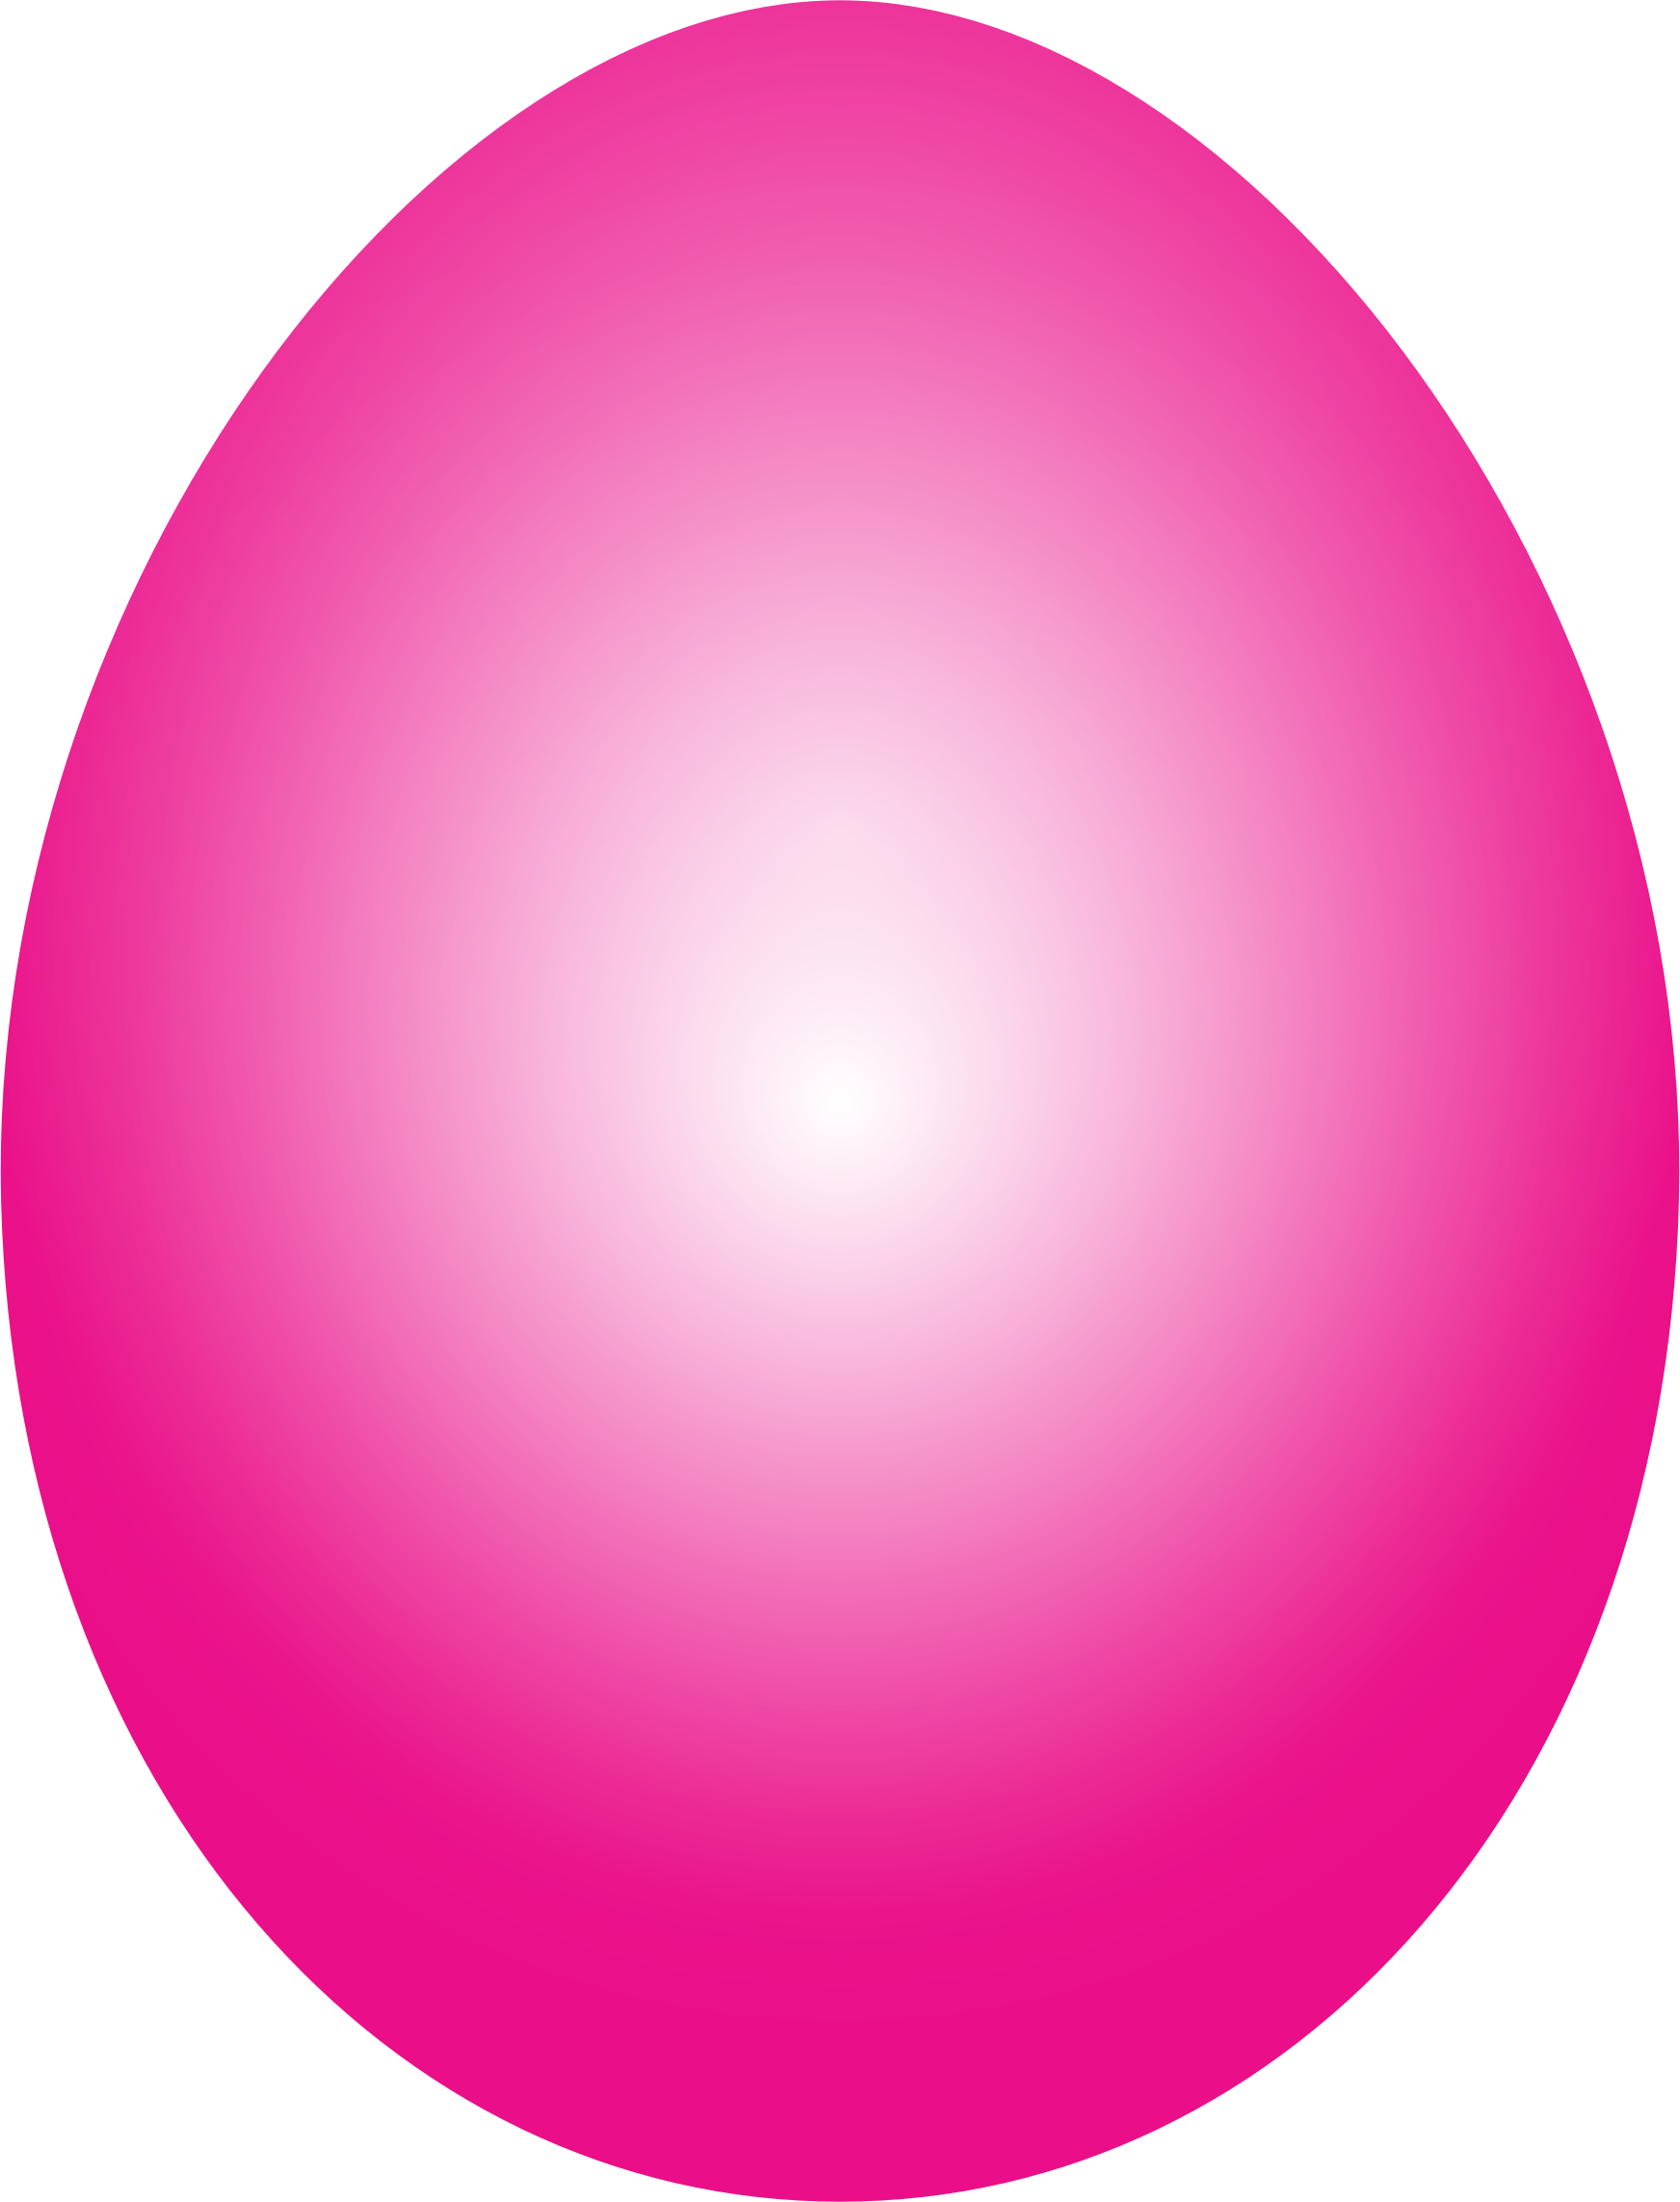 Magenta Easter Egg by GDJ